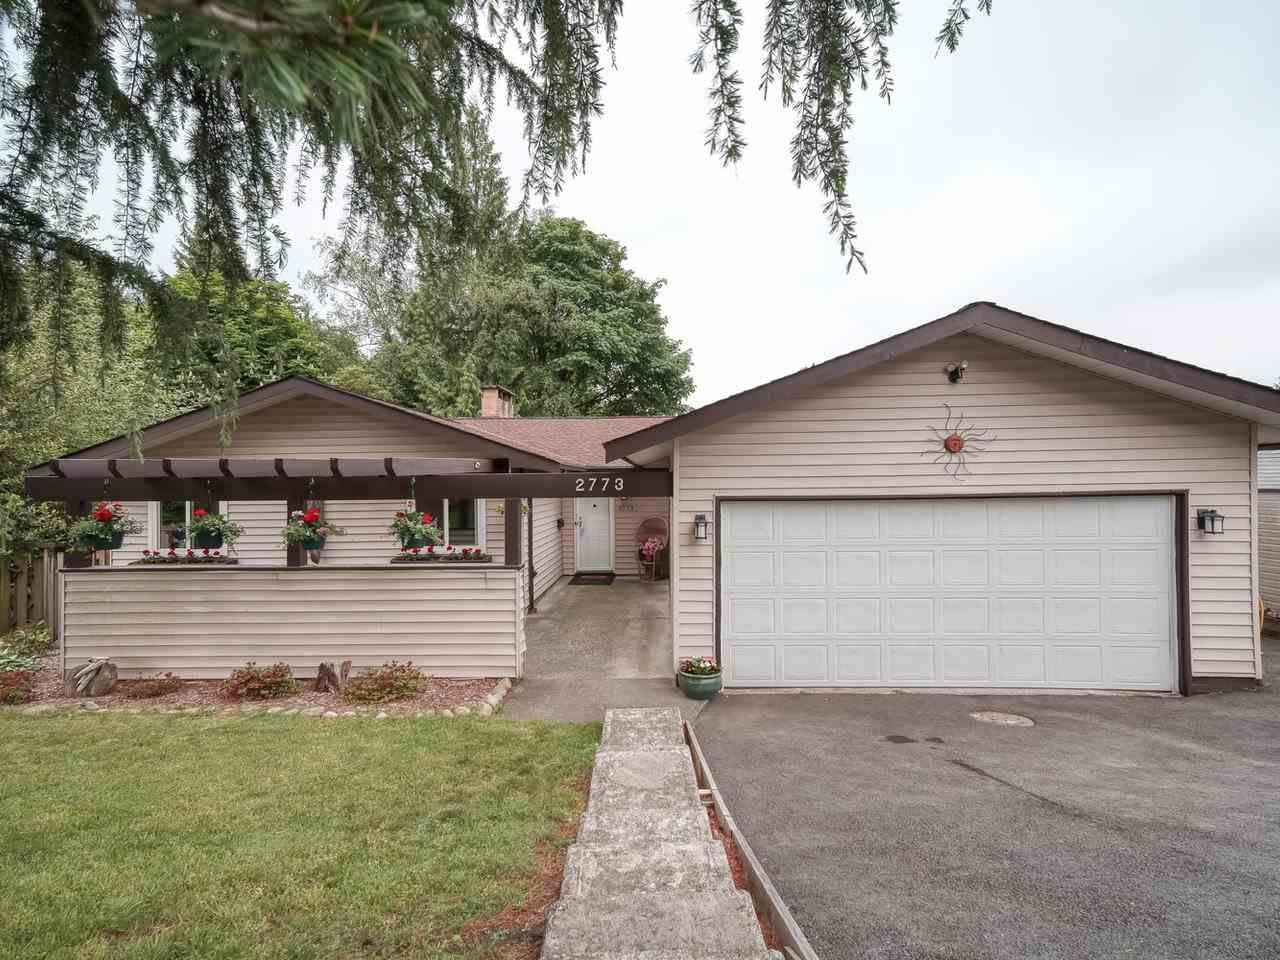 Photo 2: Photos: 2773 DAYBREAK Avenue in Coquitlam: Ranch Park House for sale : MLS®# R2457912